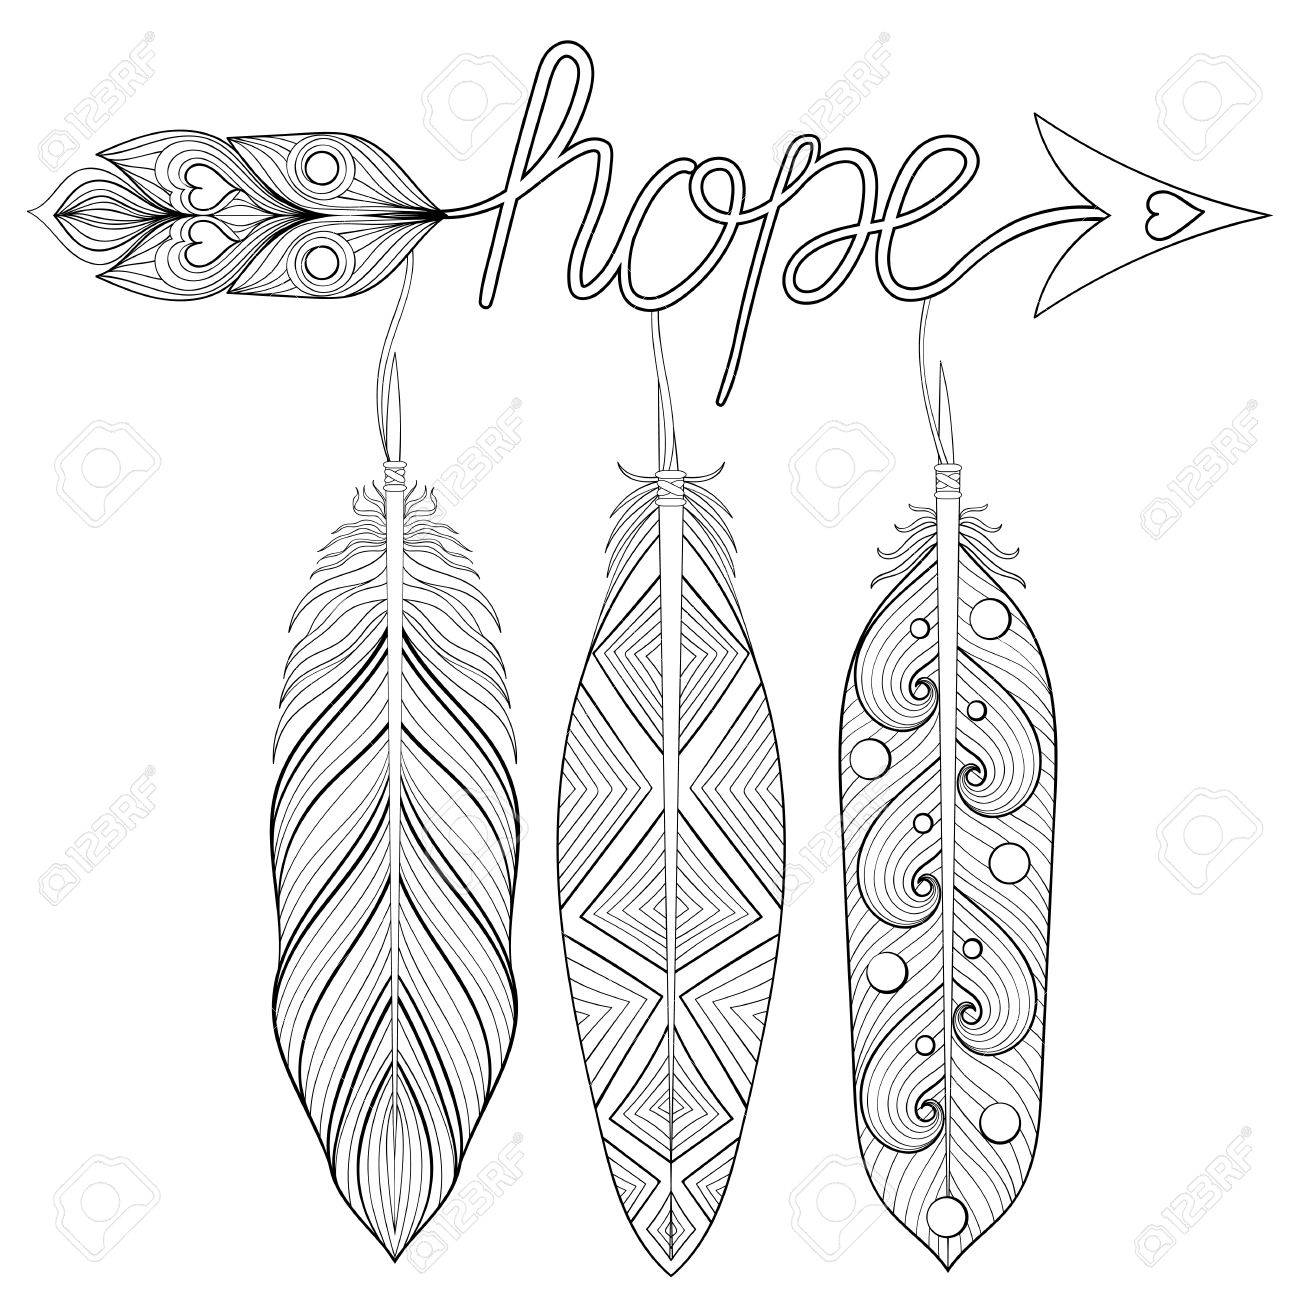 94 Top Coloring Pages For Adults Letters , Free HD Download